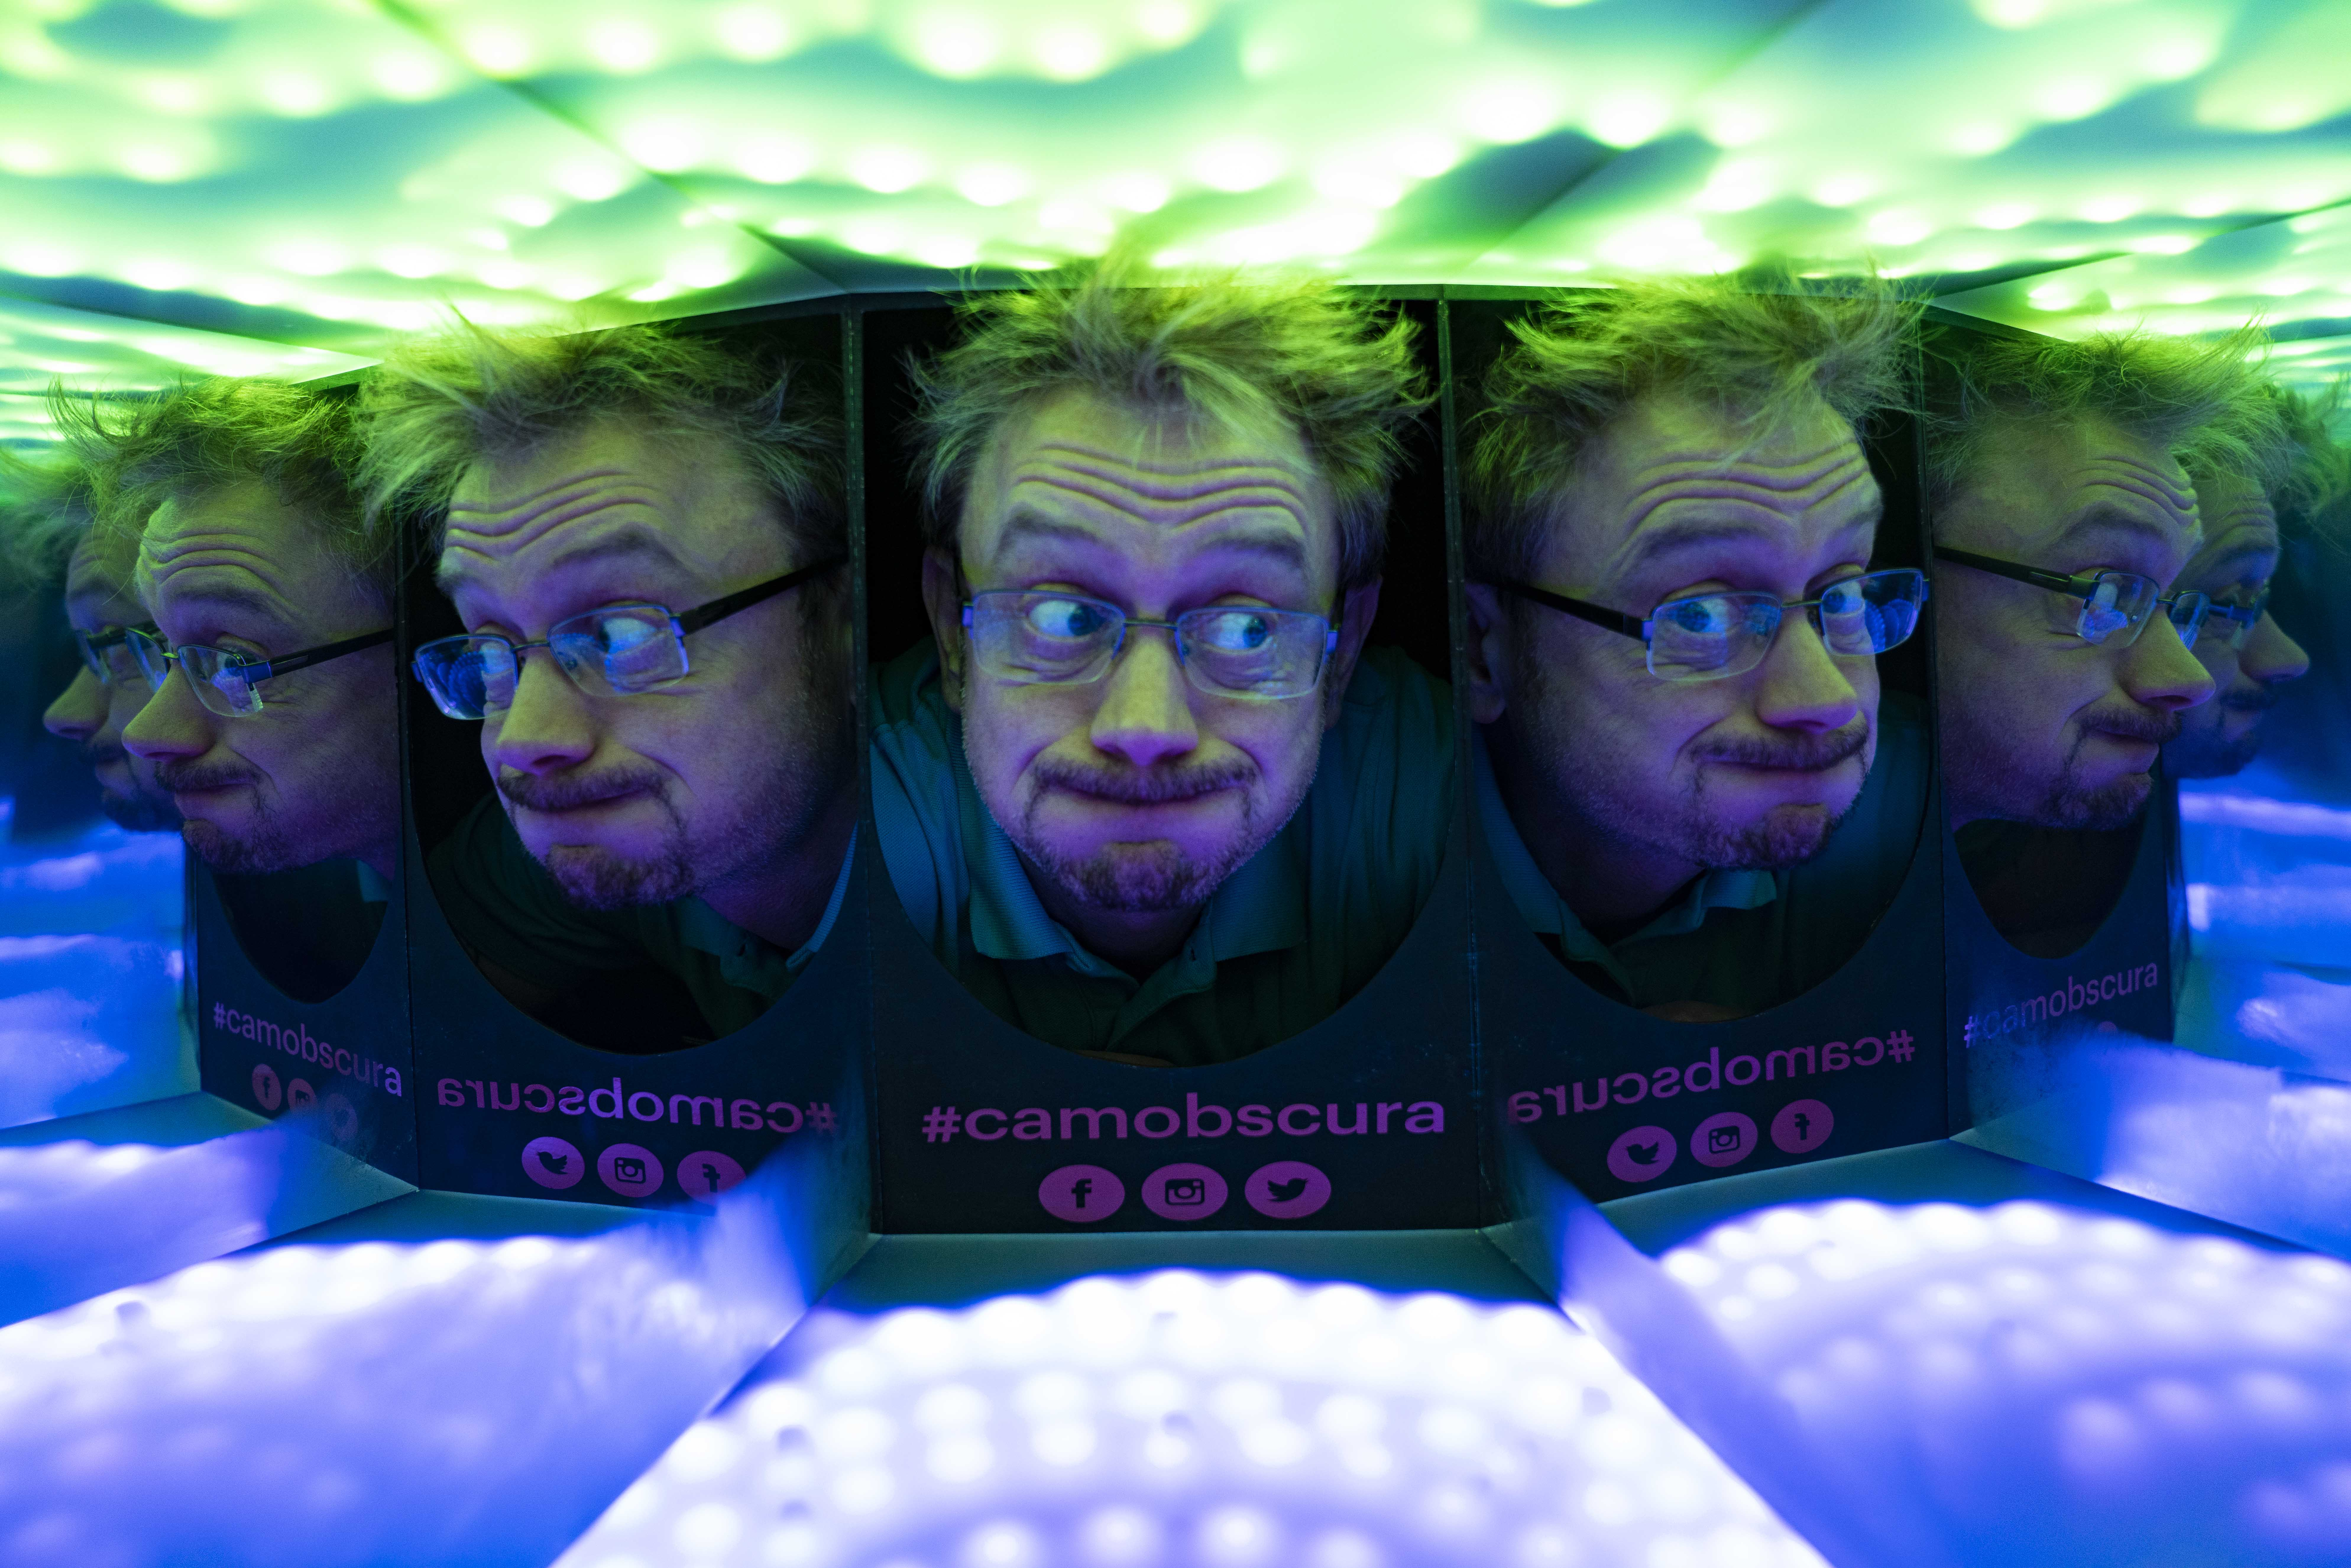 Blaine in the Kaleidohead at Camera Obscura